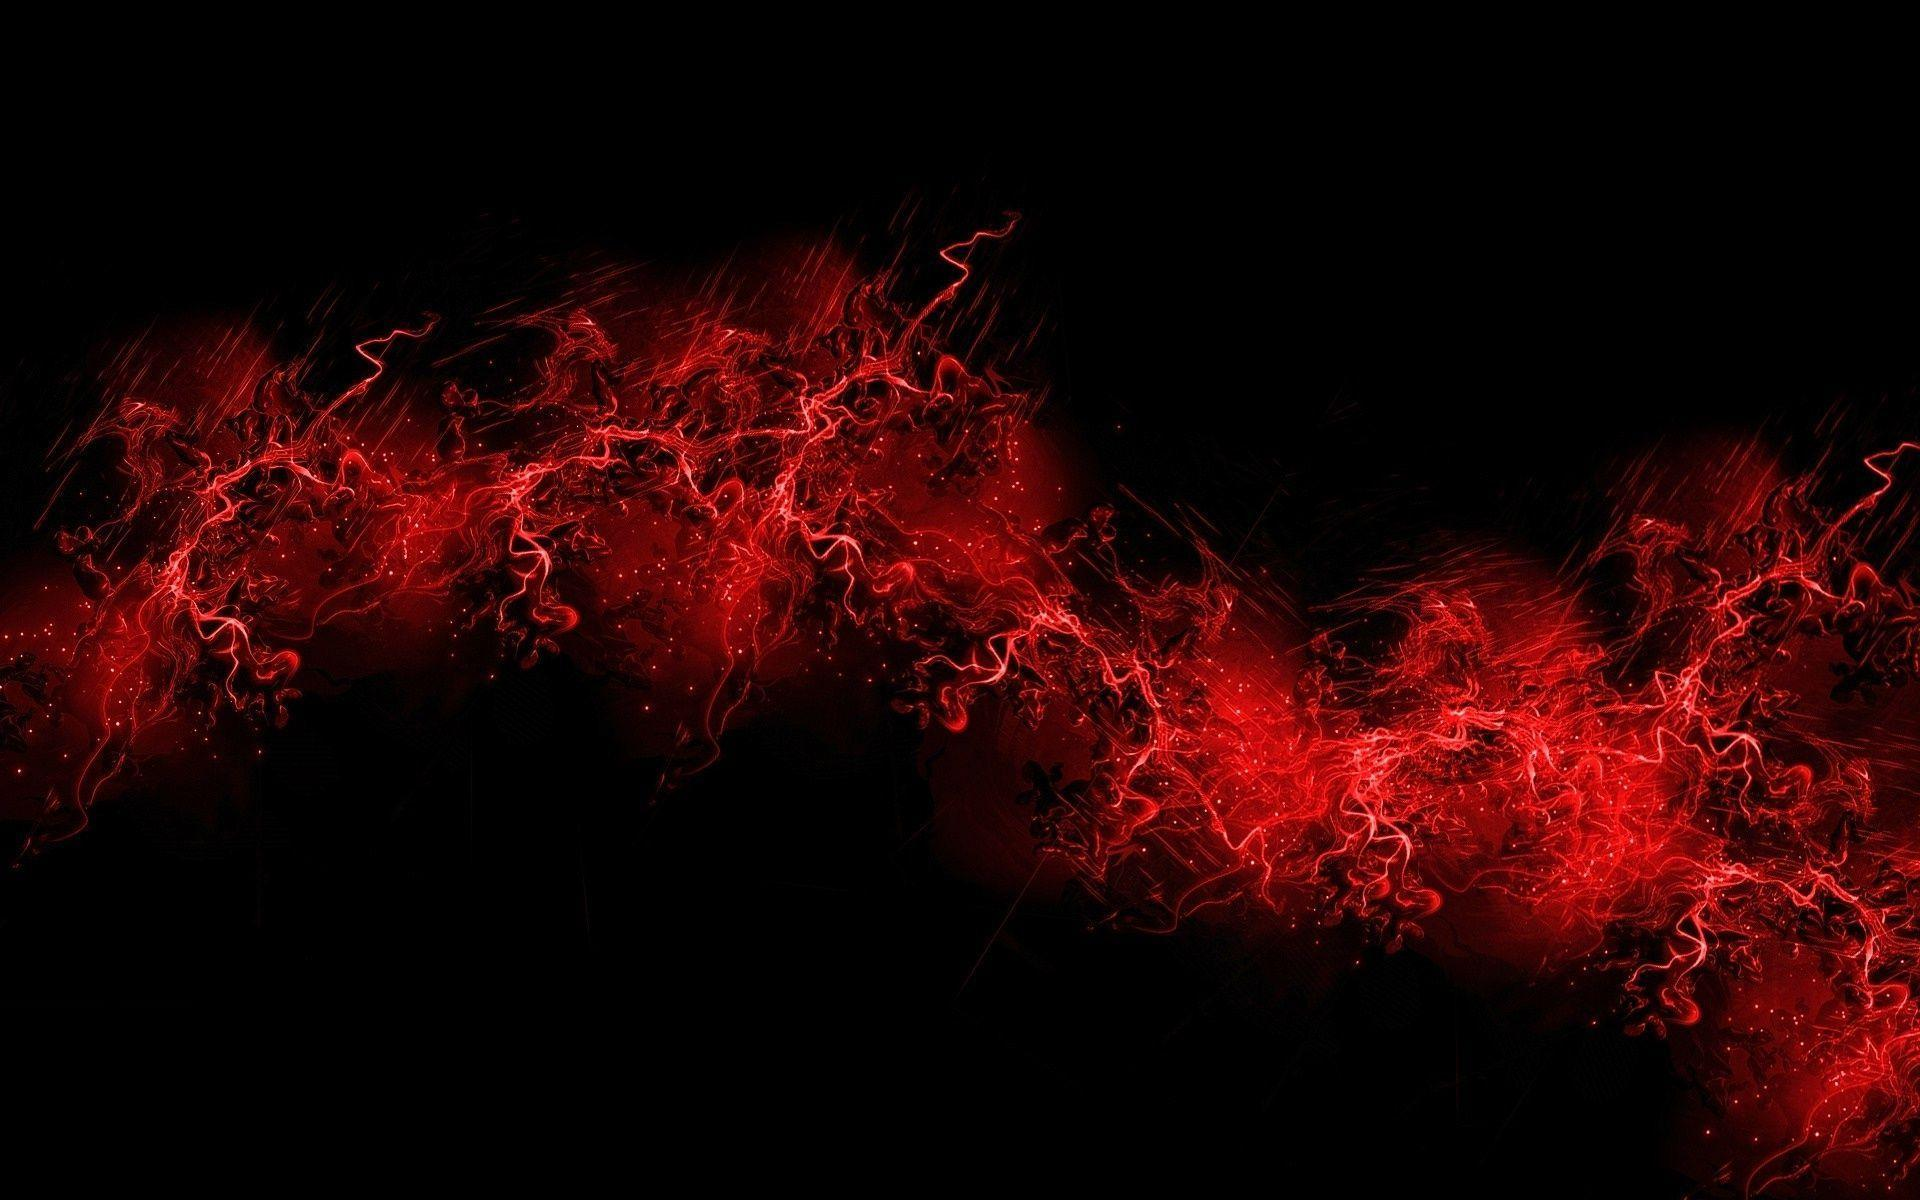 Red And Black Abstract Backgrounds Posted By Ethan Walker